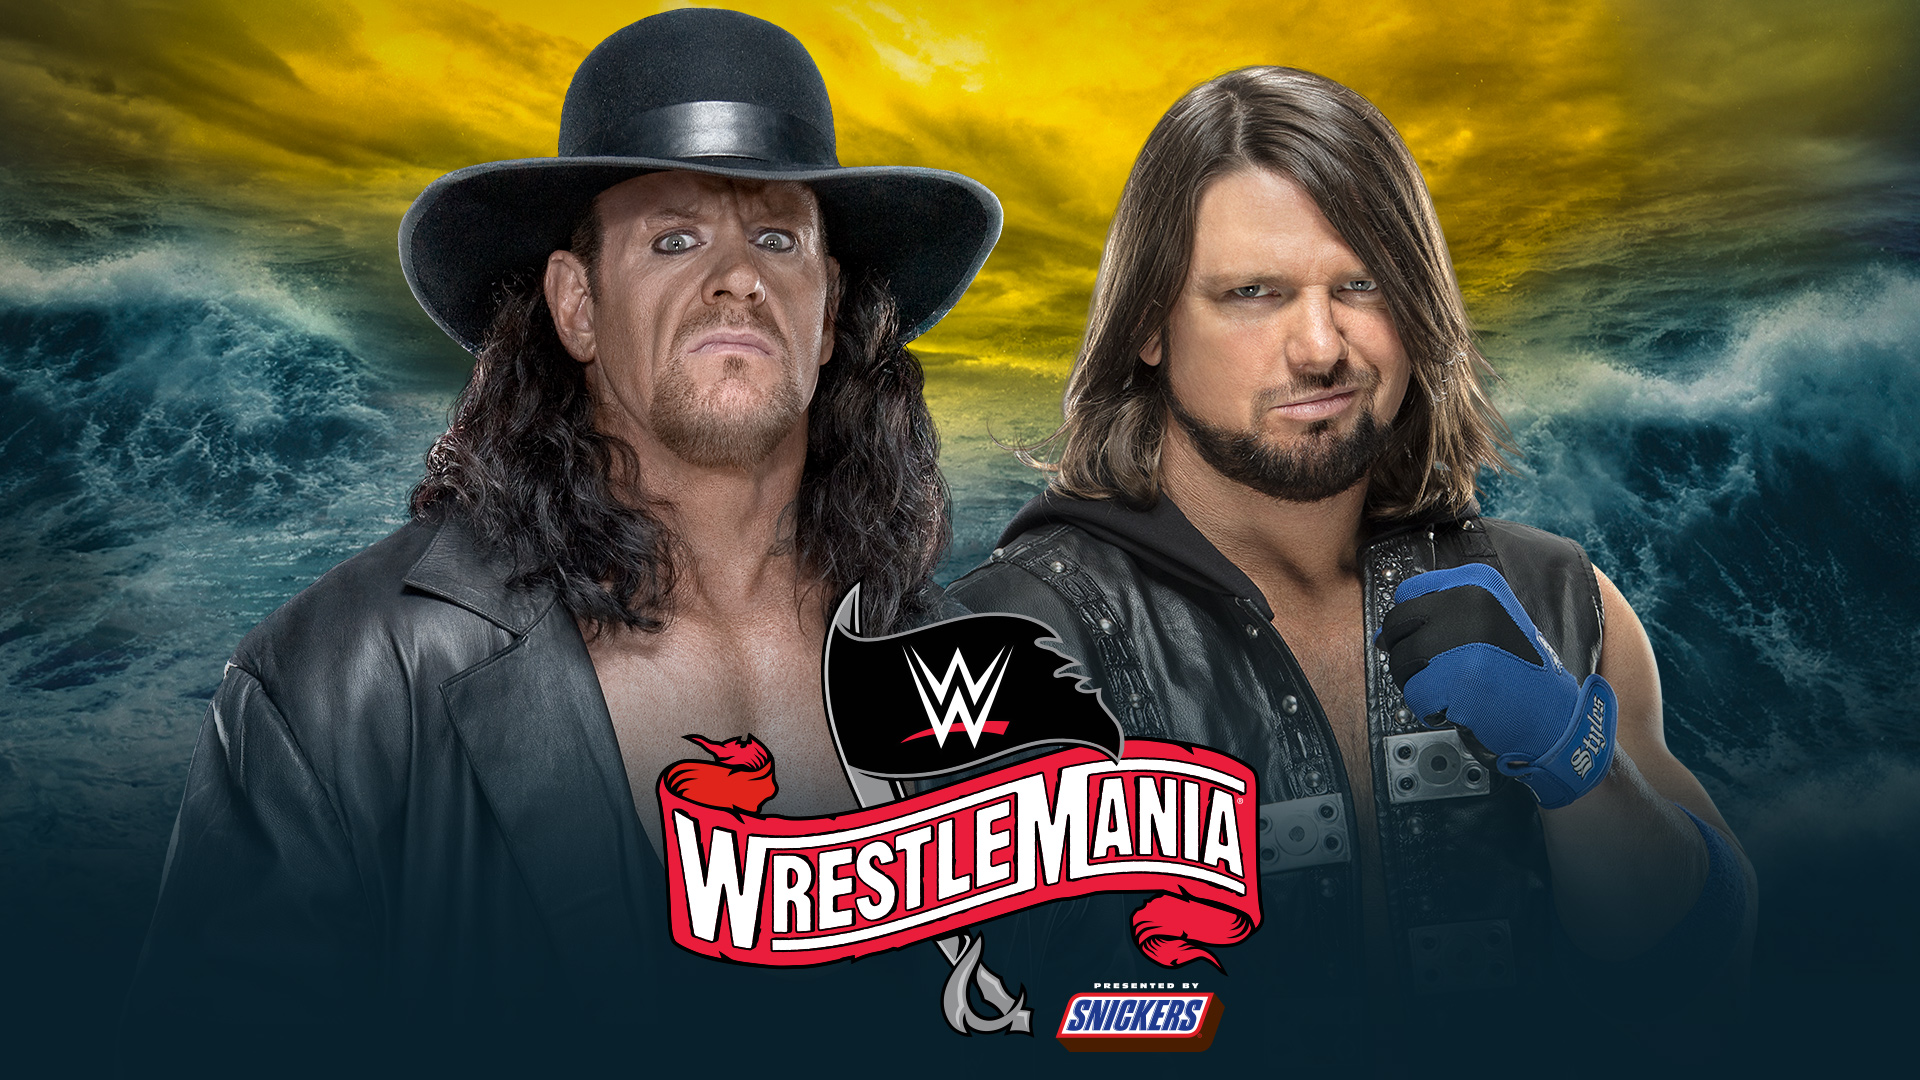 Update On Two-Night WWE Wrestlemania 36 Match Card & Venues 2